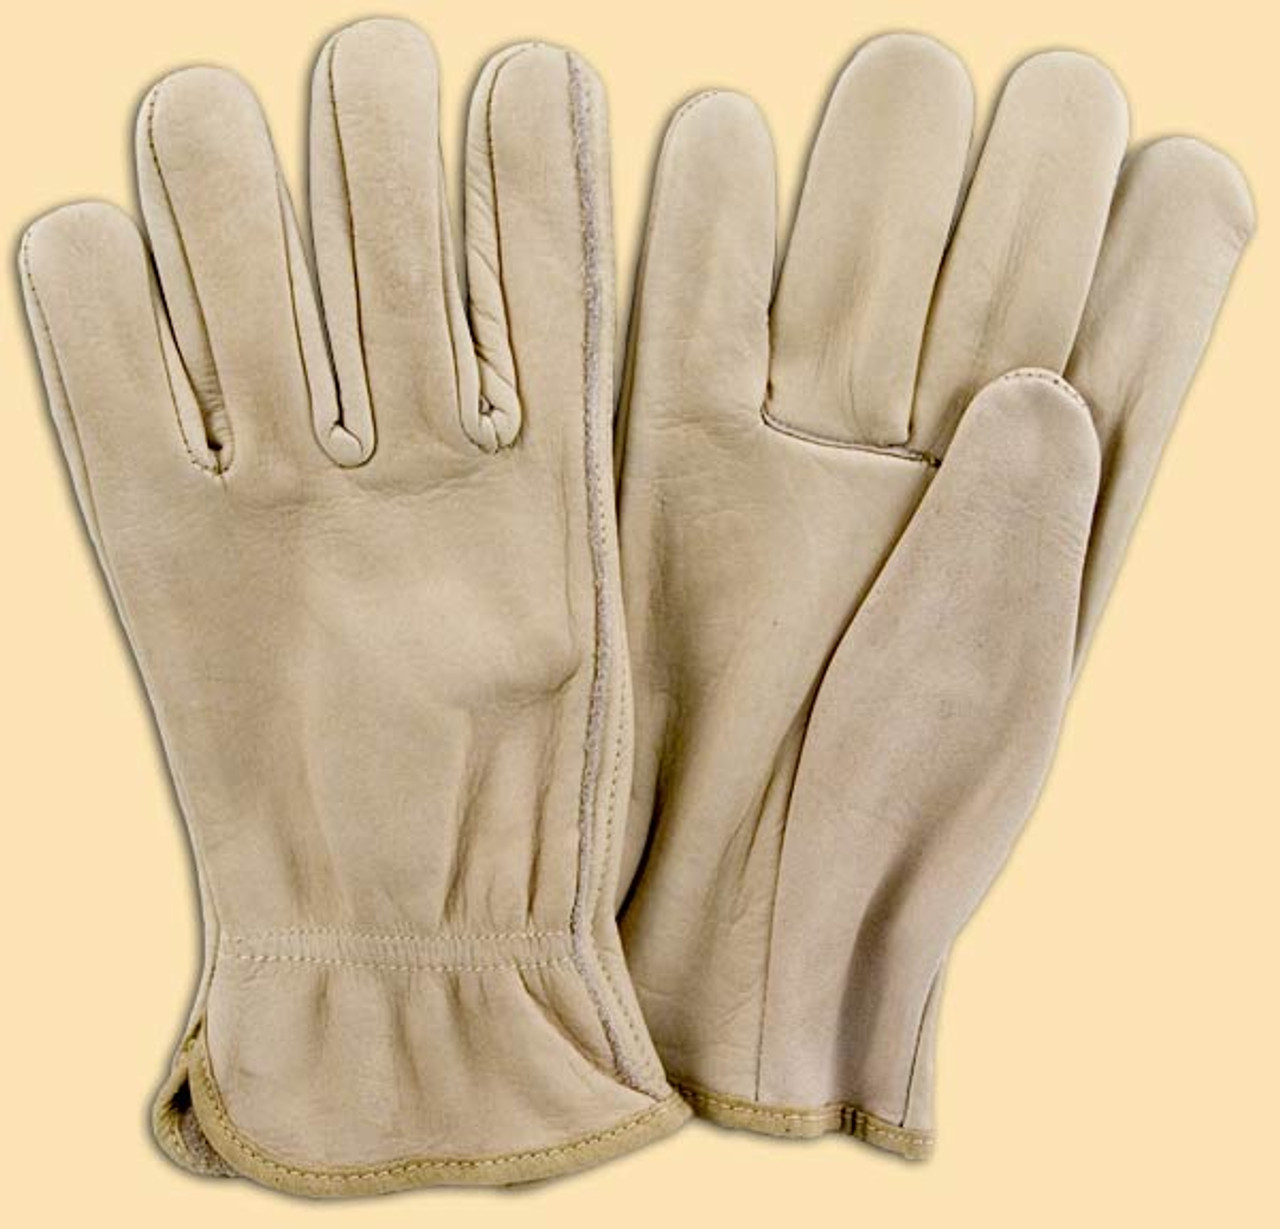 Coyle s Indiana Jones Style Leather Gloves ff47bc35000